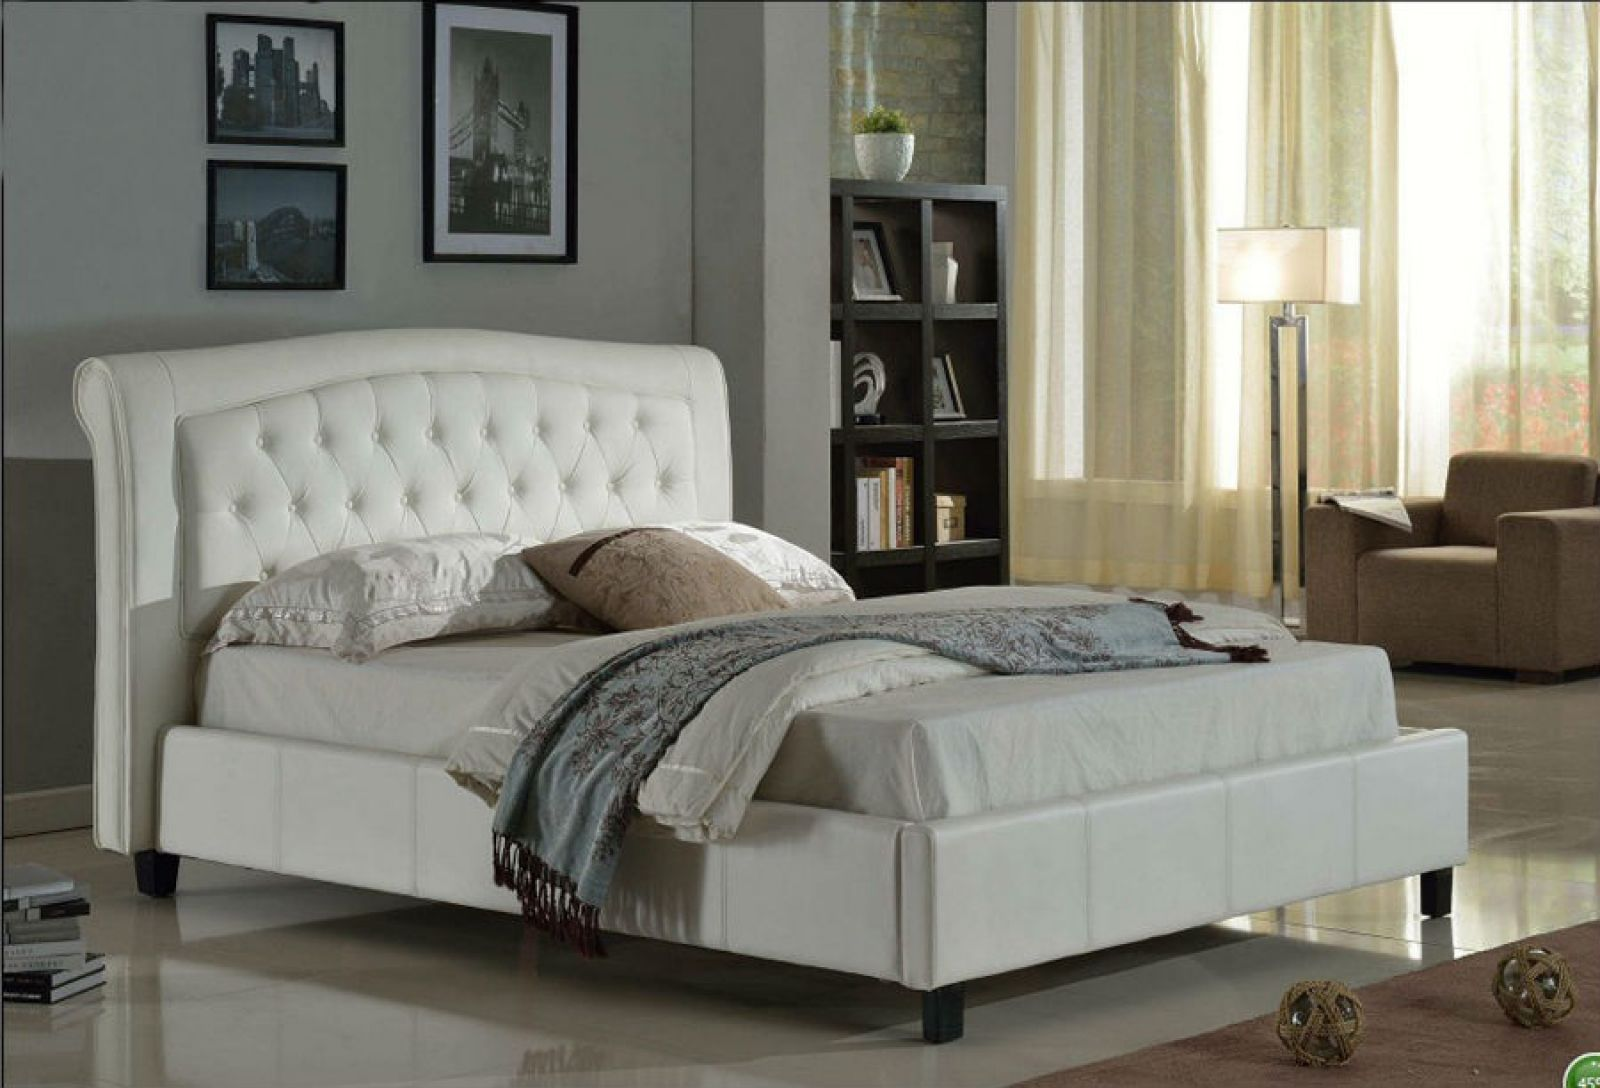 Luxury White Leather Bed QUEEN Hometown Furniture Ltd